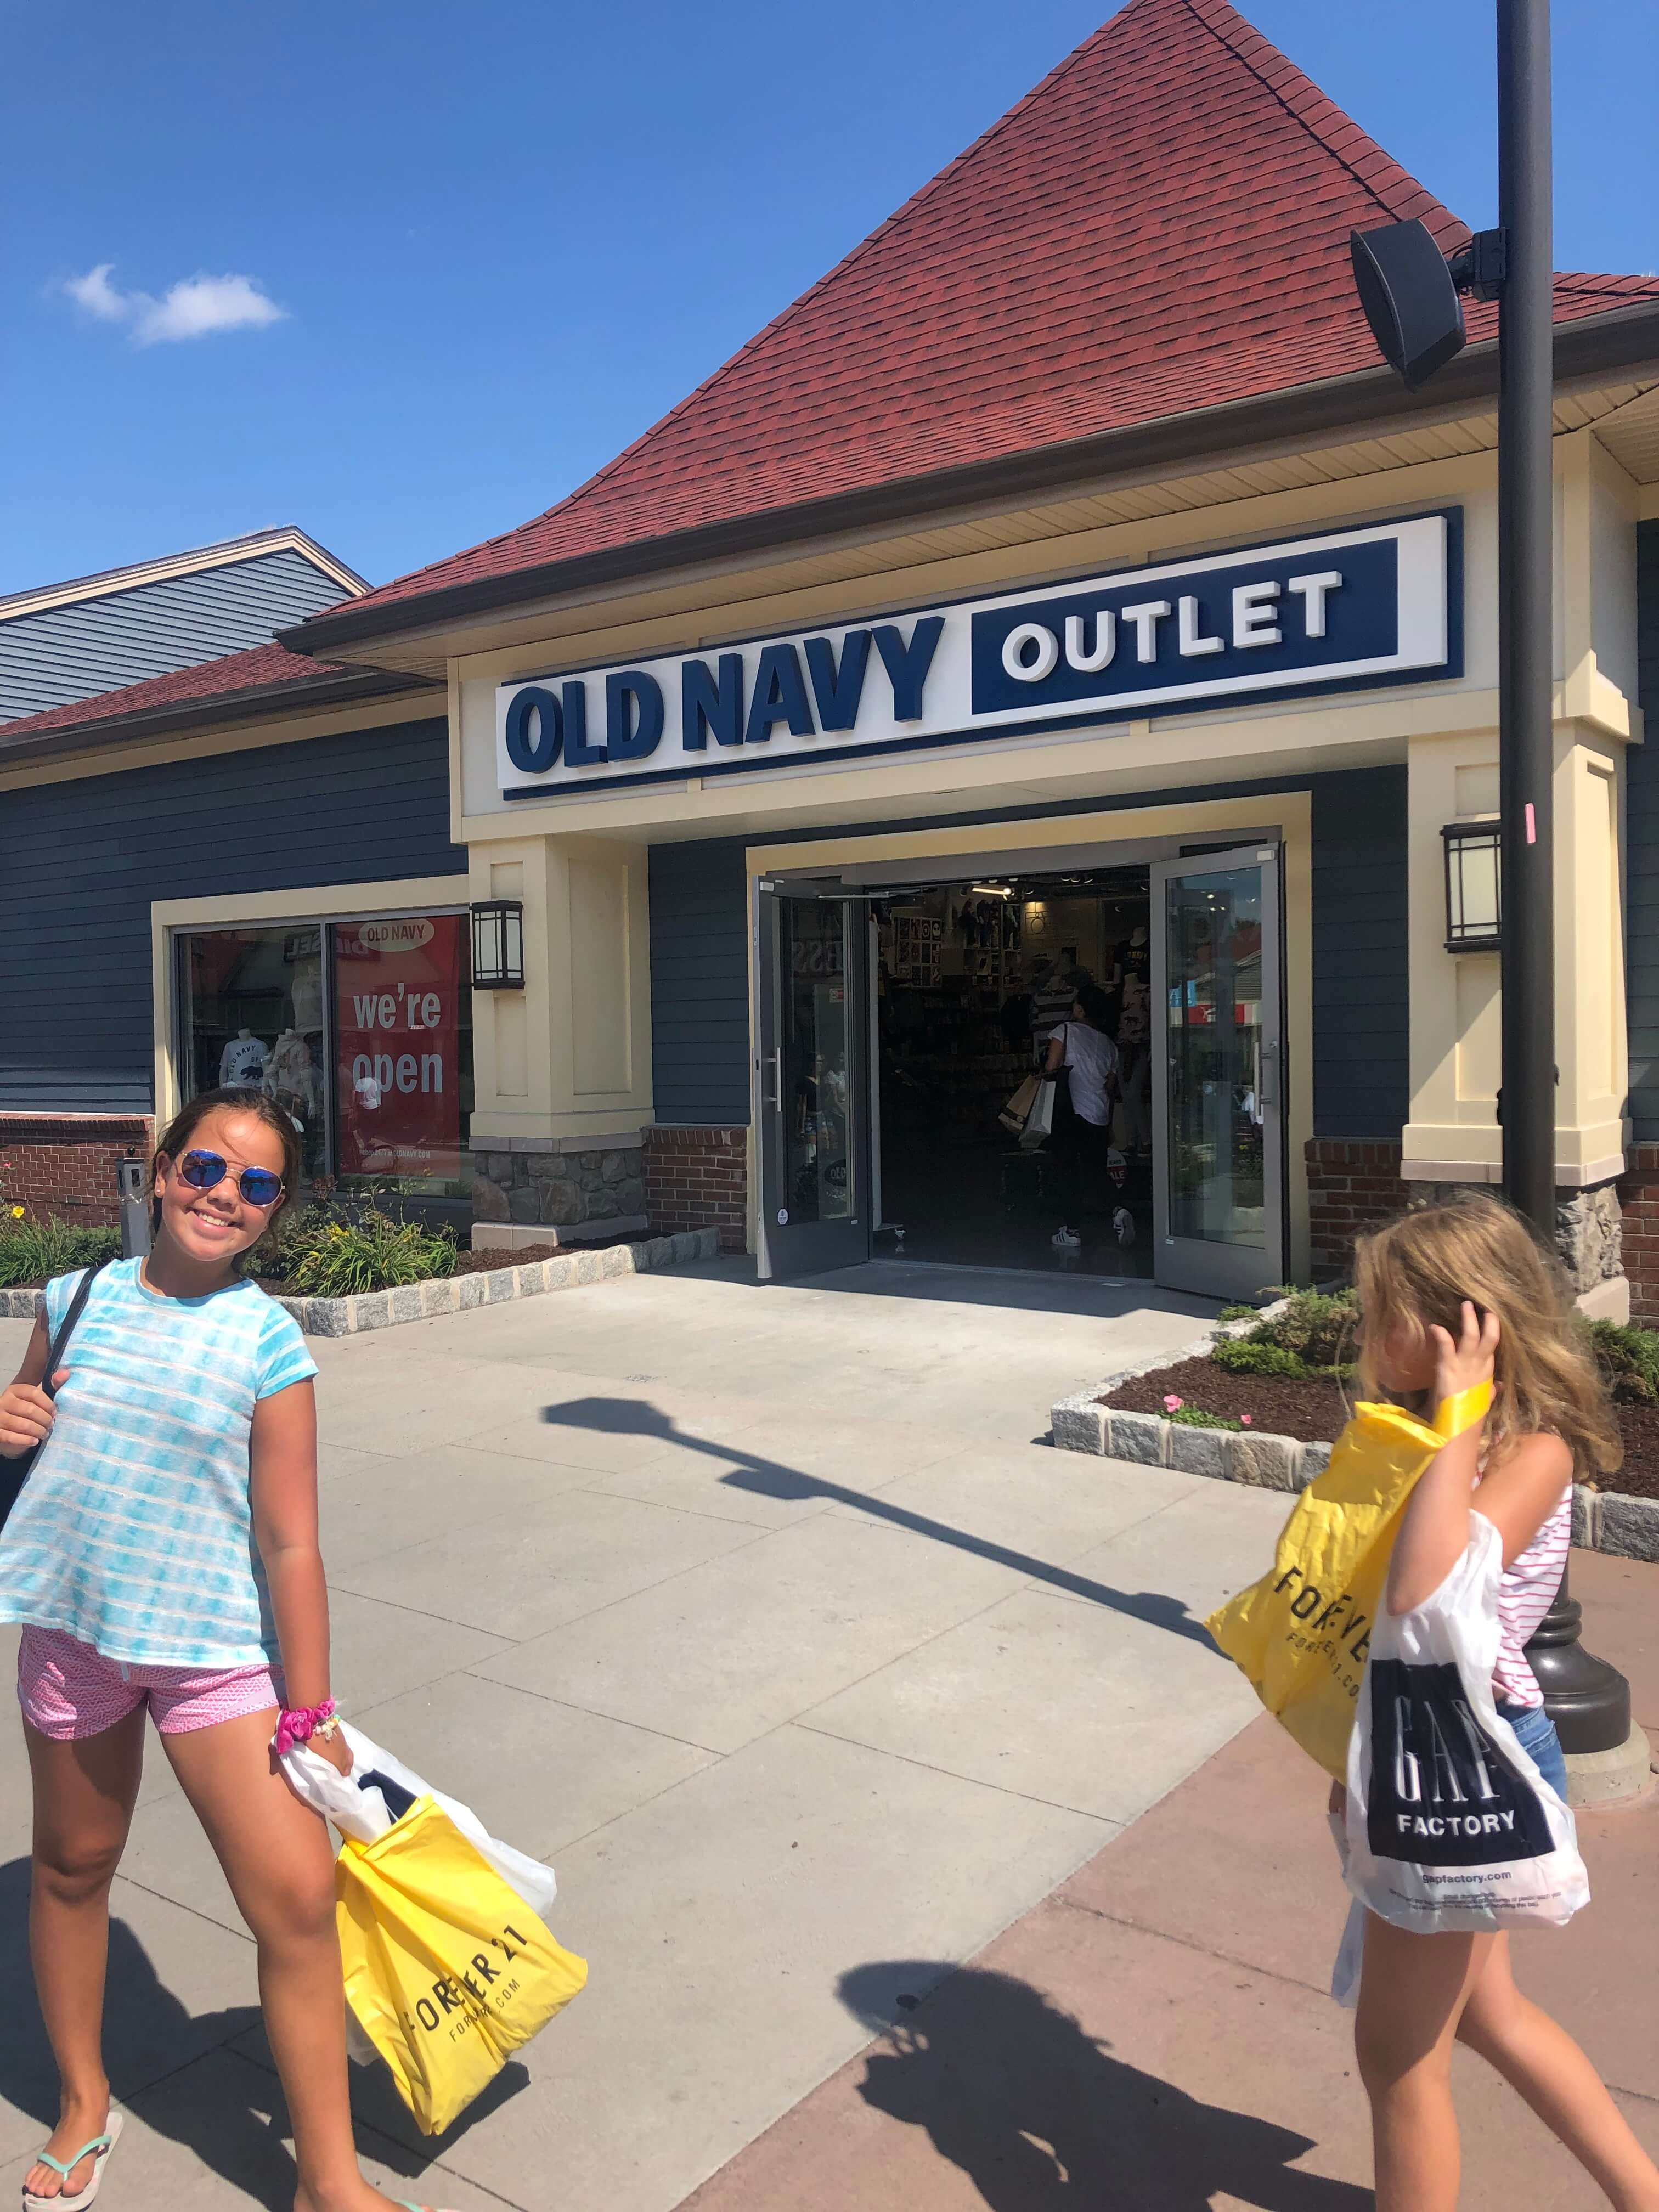 old navy outlets Woodbury commons